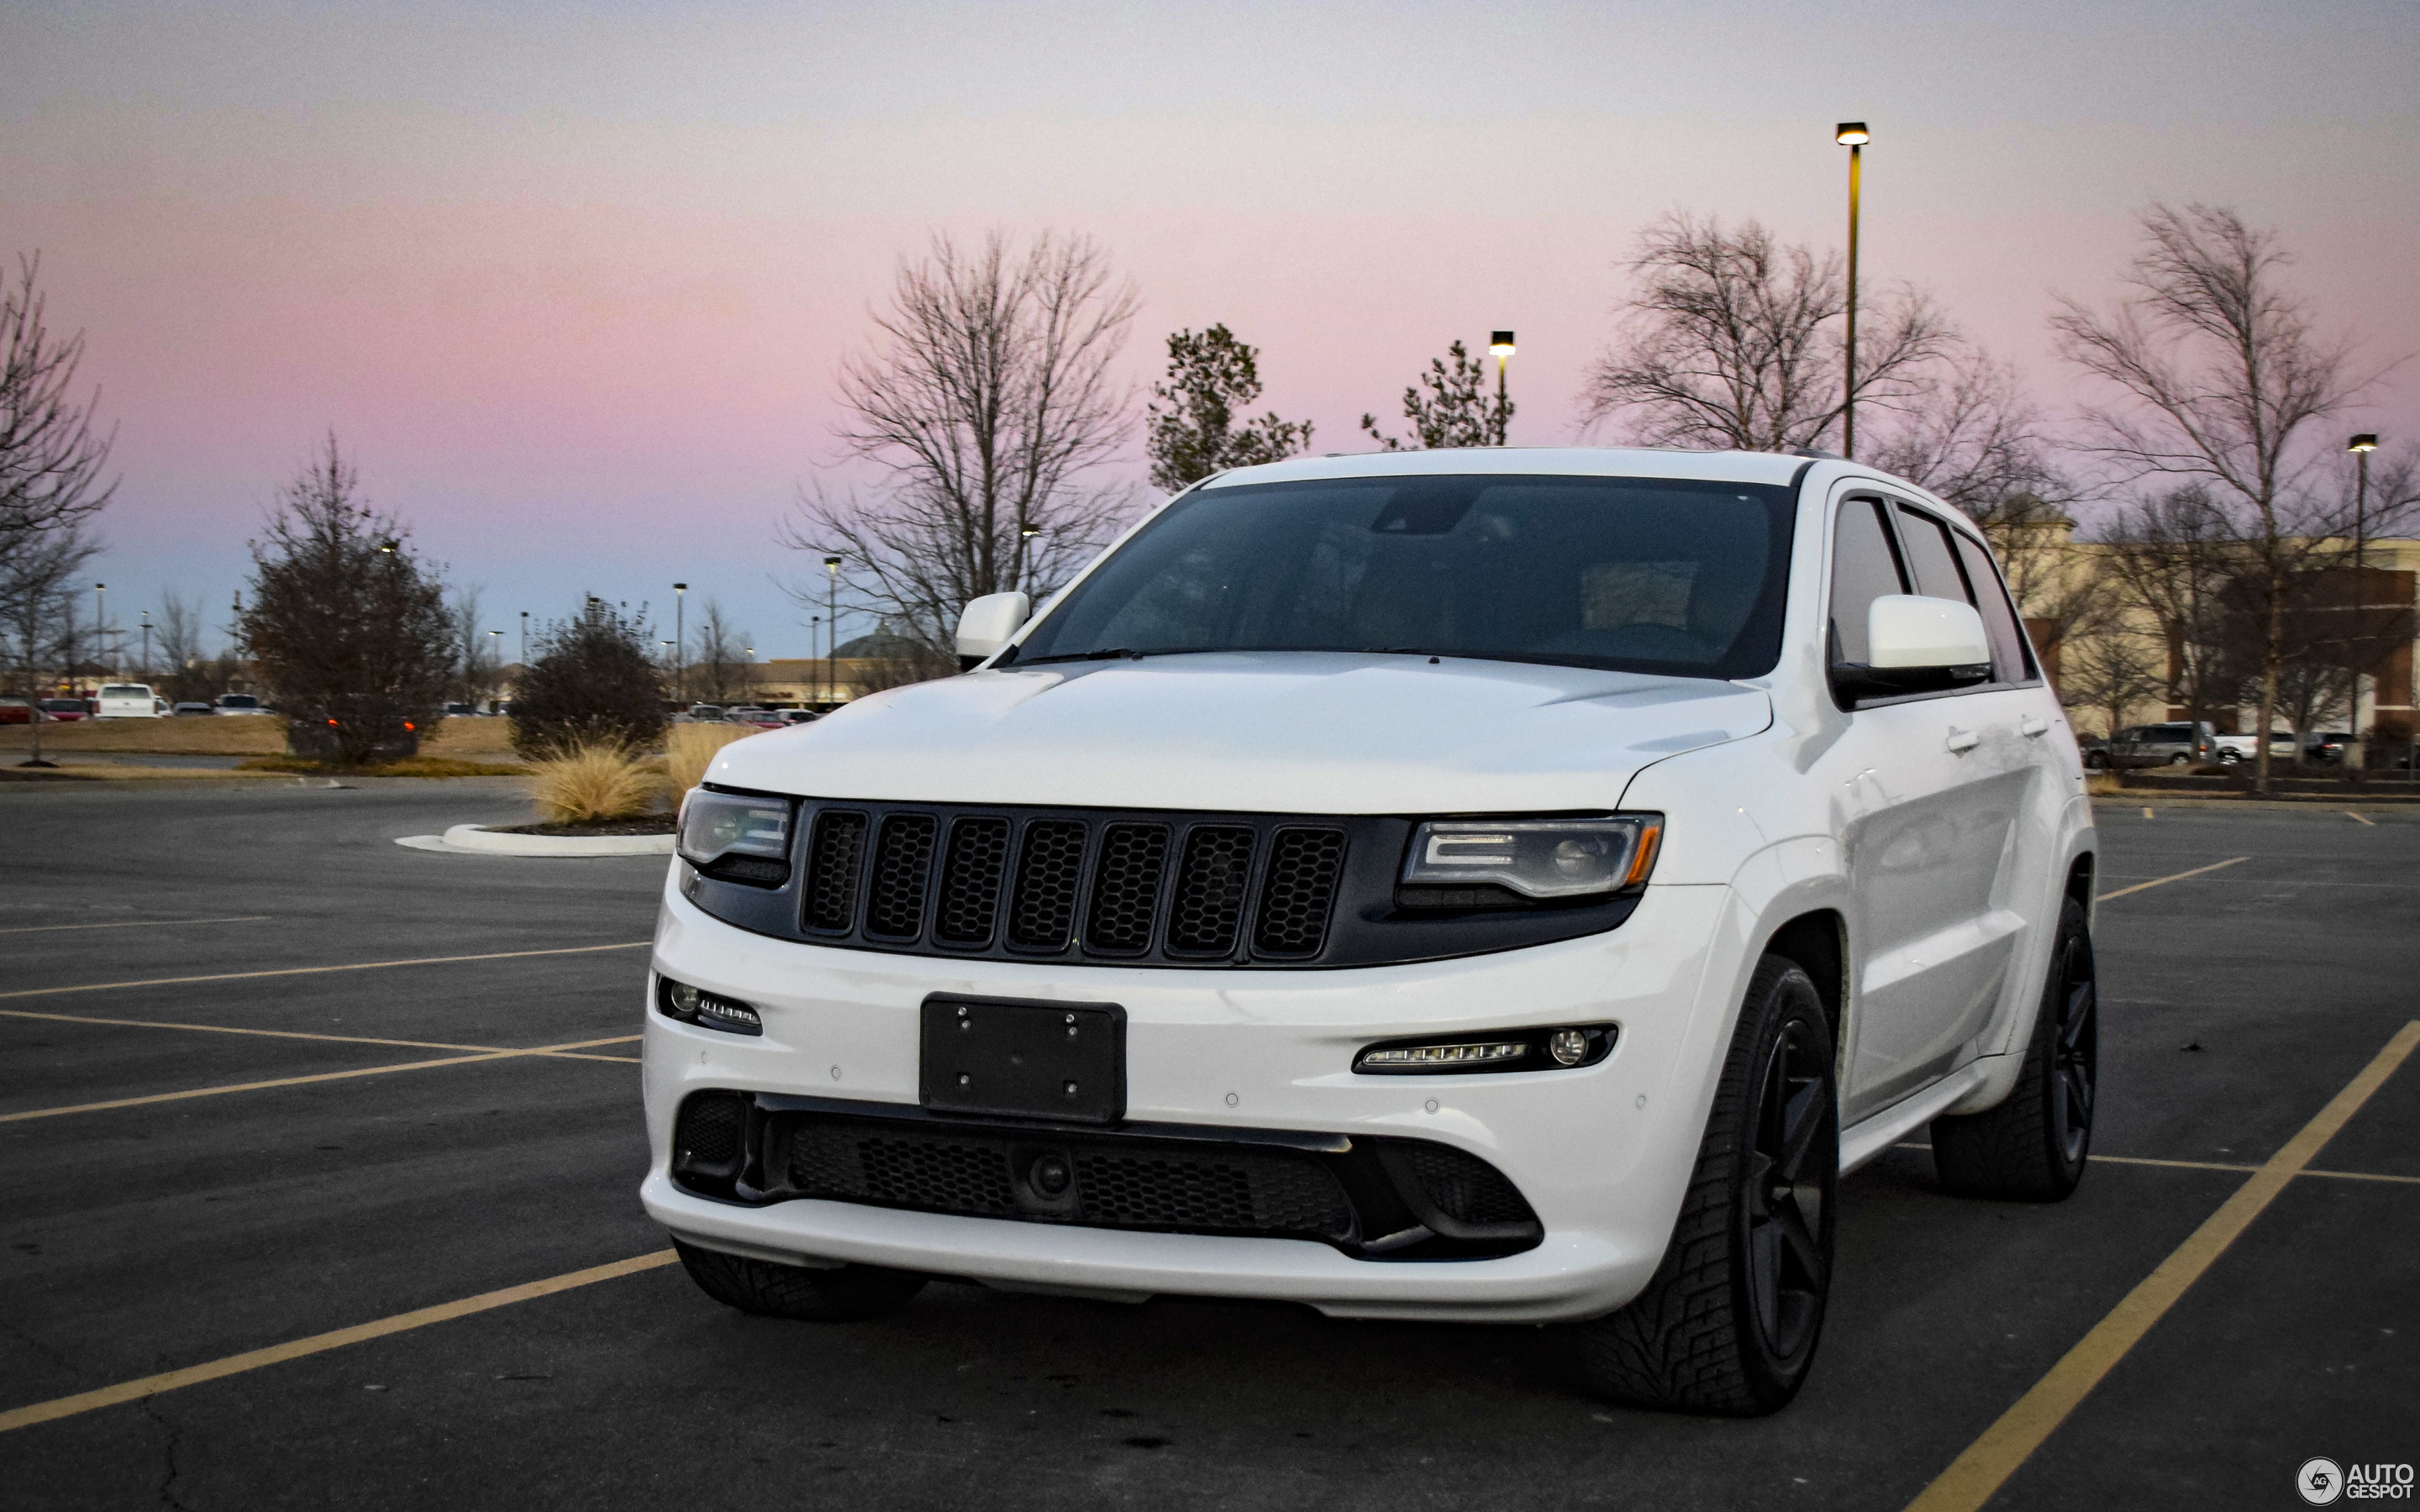 jeep grand cherokee srt 8 2013 25 february 2018 autogespot. Black Bedroom Furniture Sets. Home Design Ideas